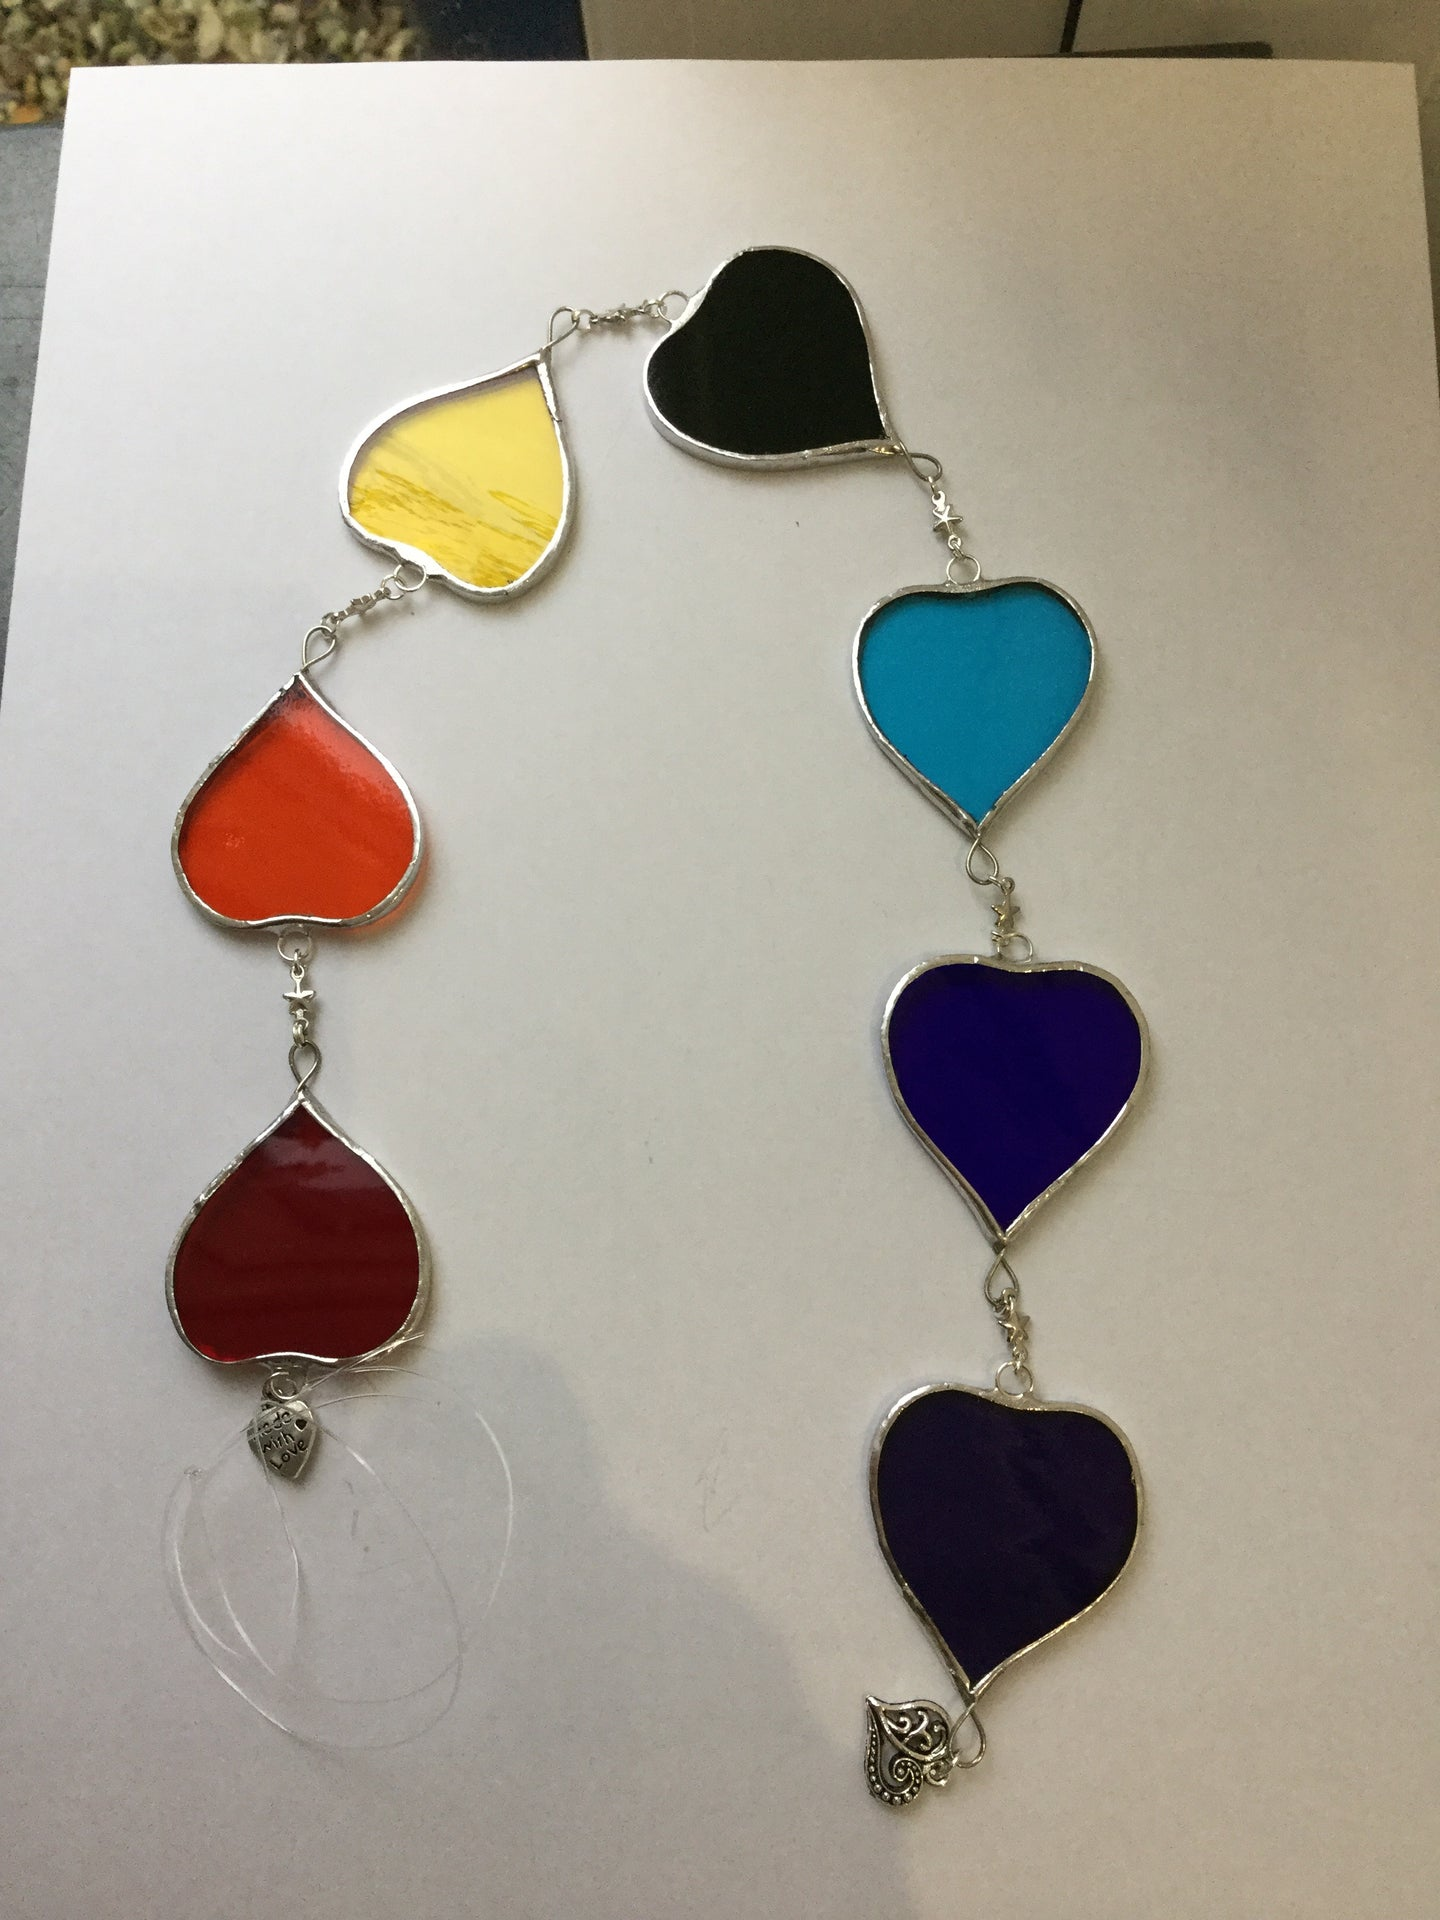 Devon Glass Studio String of 7 Hearts